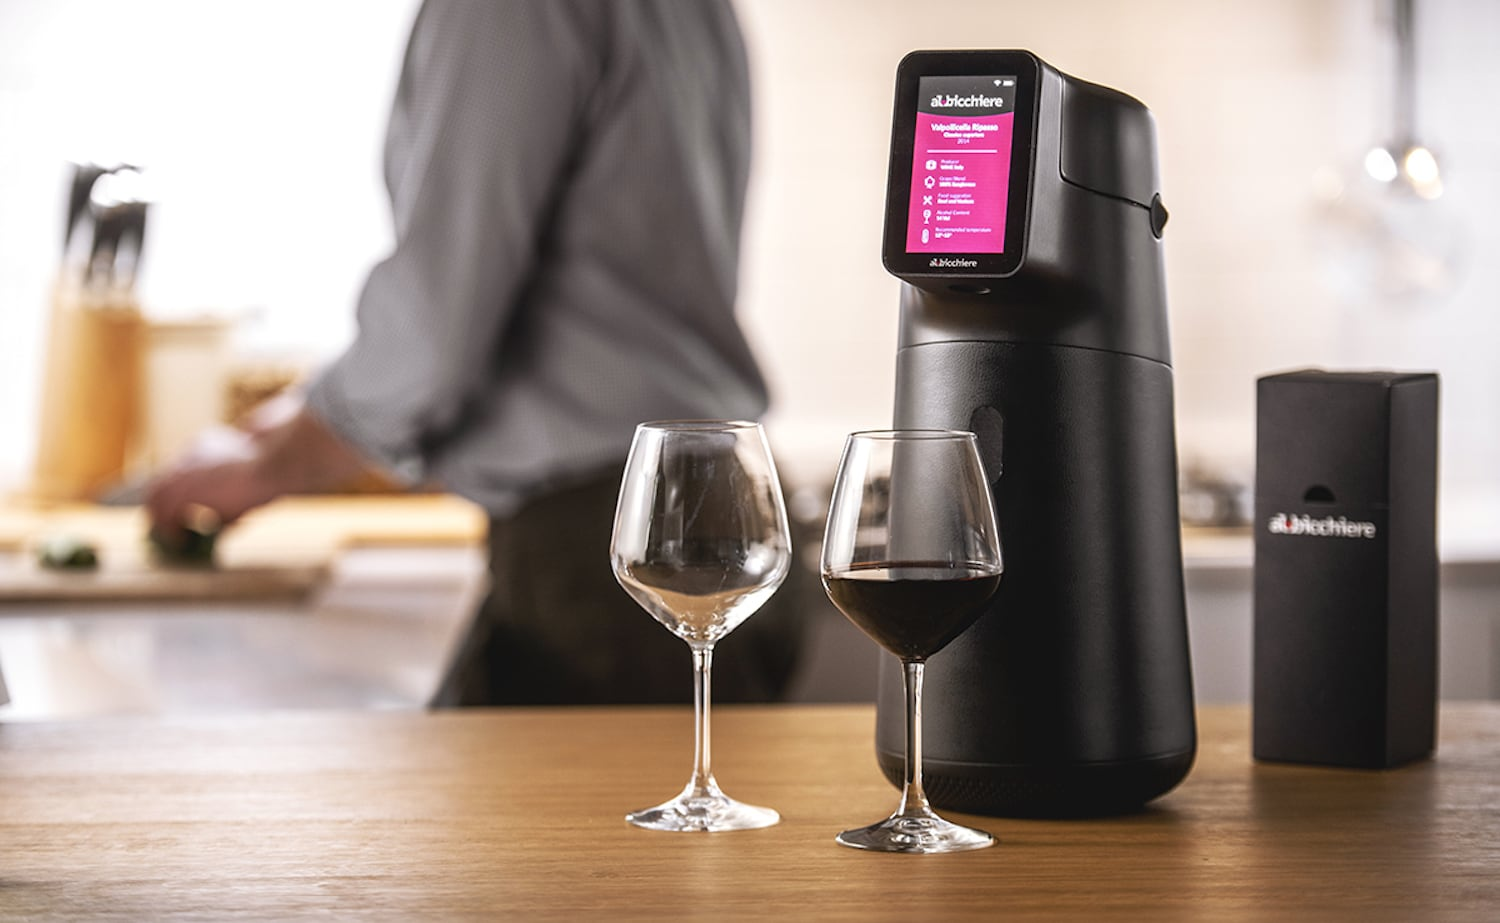 Albicchiere Smart Wine Preserver and Dispenser serves wine at the ideal temperature